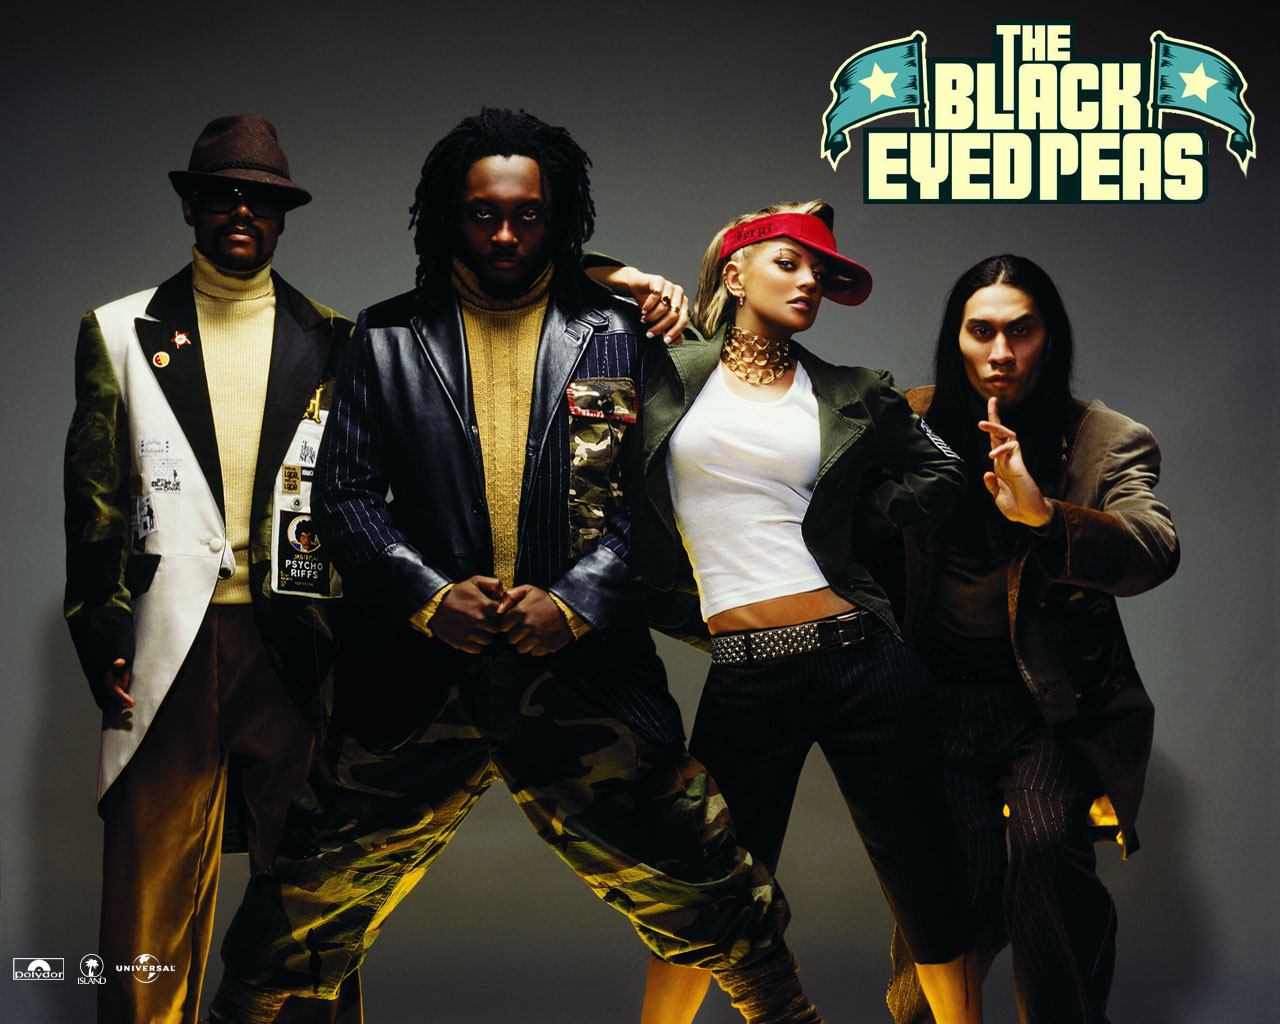 http://1.bp.blogspot.com/_n_5ZETSr6jc/TJKmw0R9kVI/AAAAAAAAAAM/Oc79MK5EcAM/s1600/The-Black-Eyed-Peas.jpg